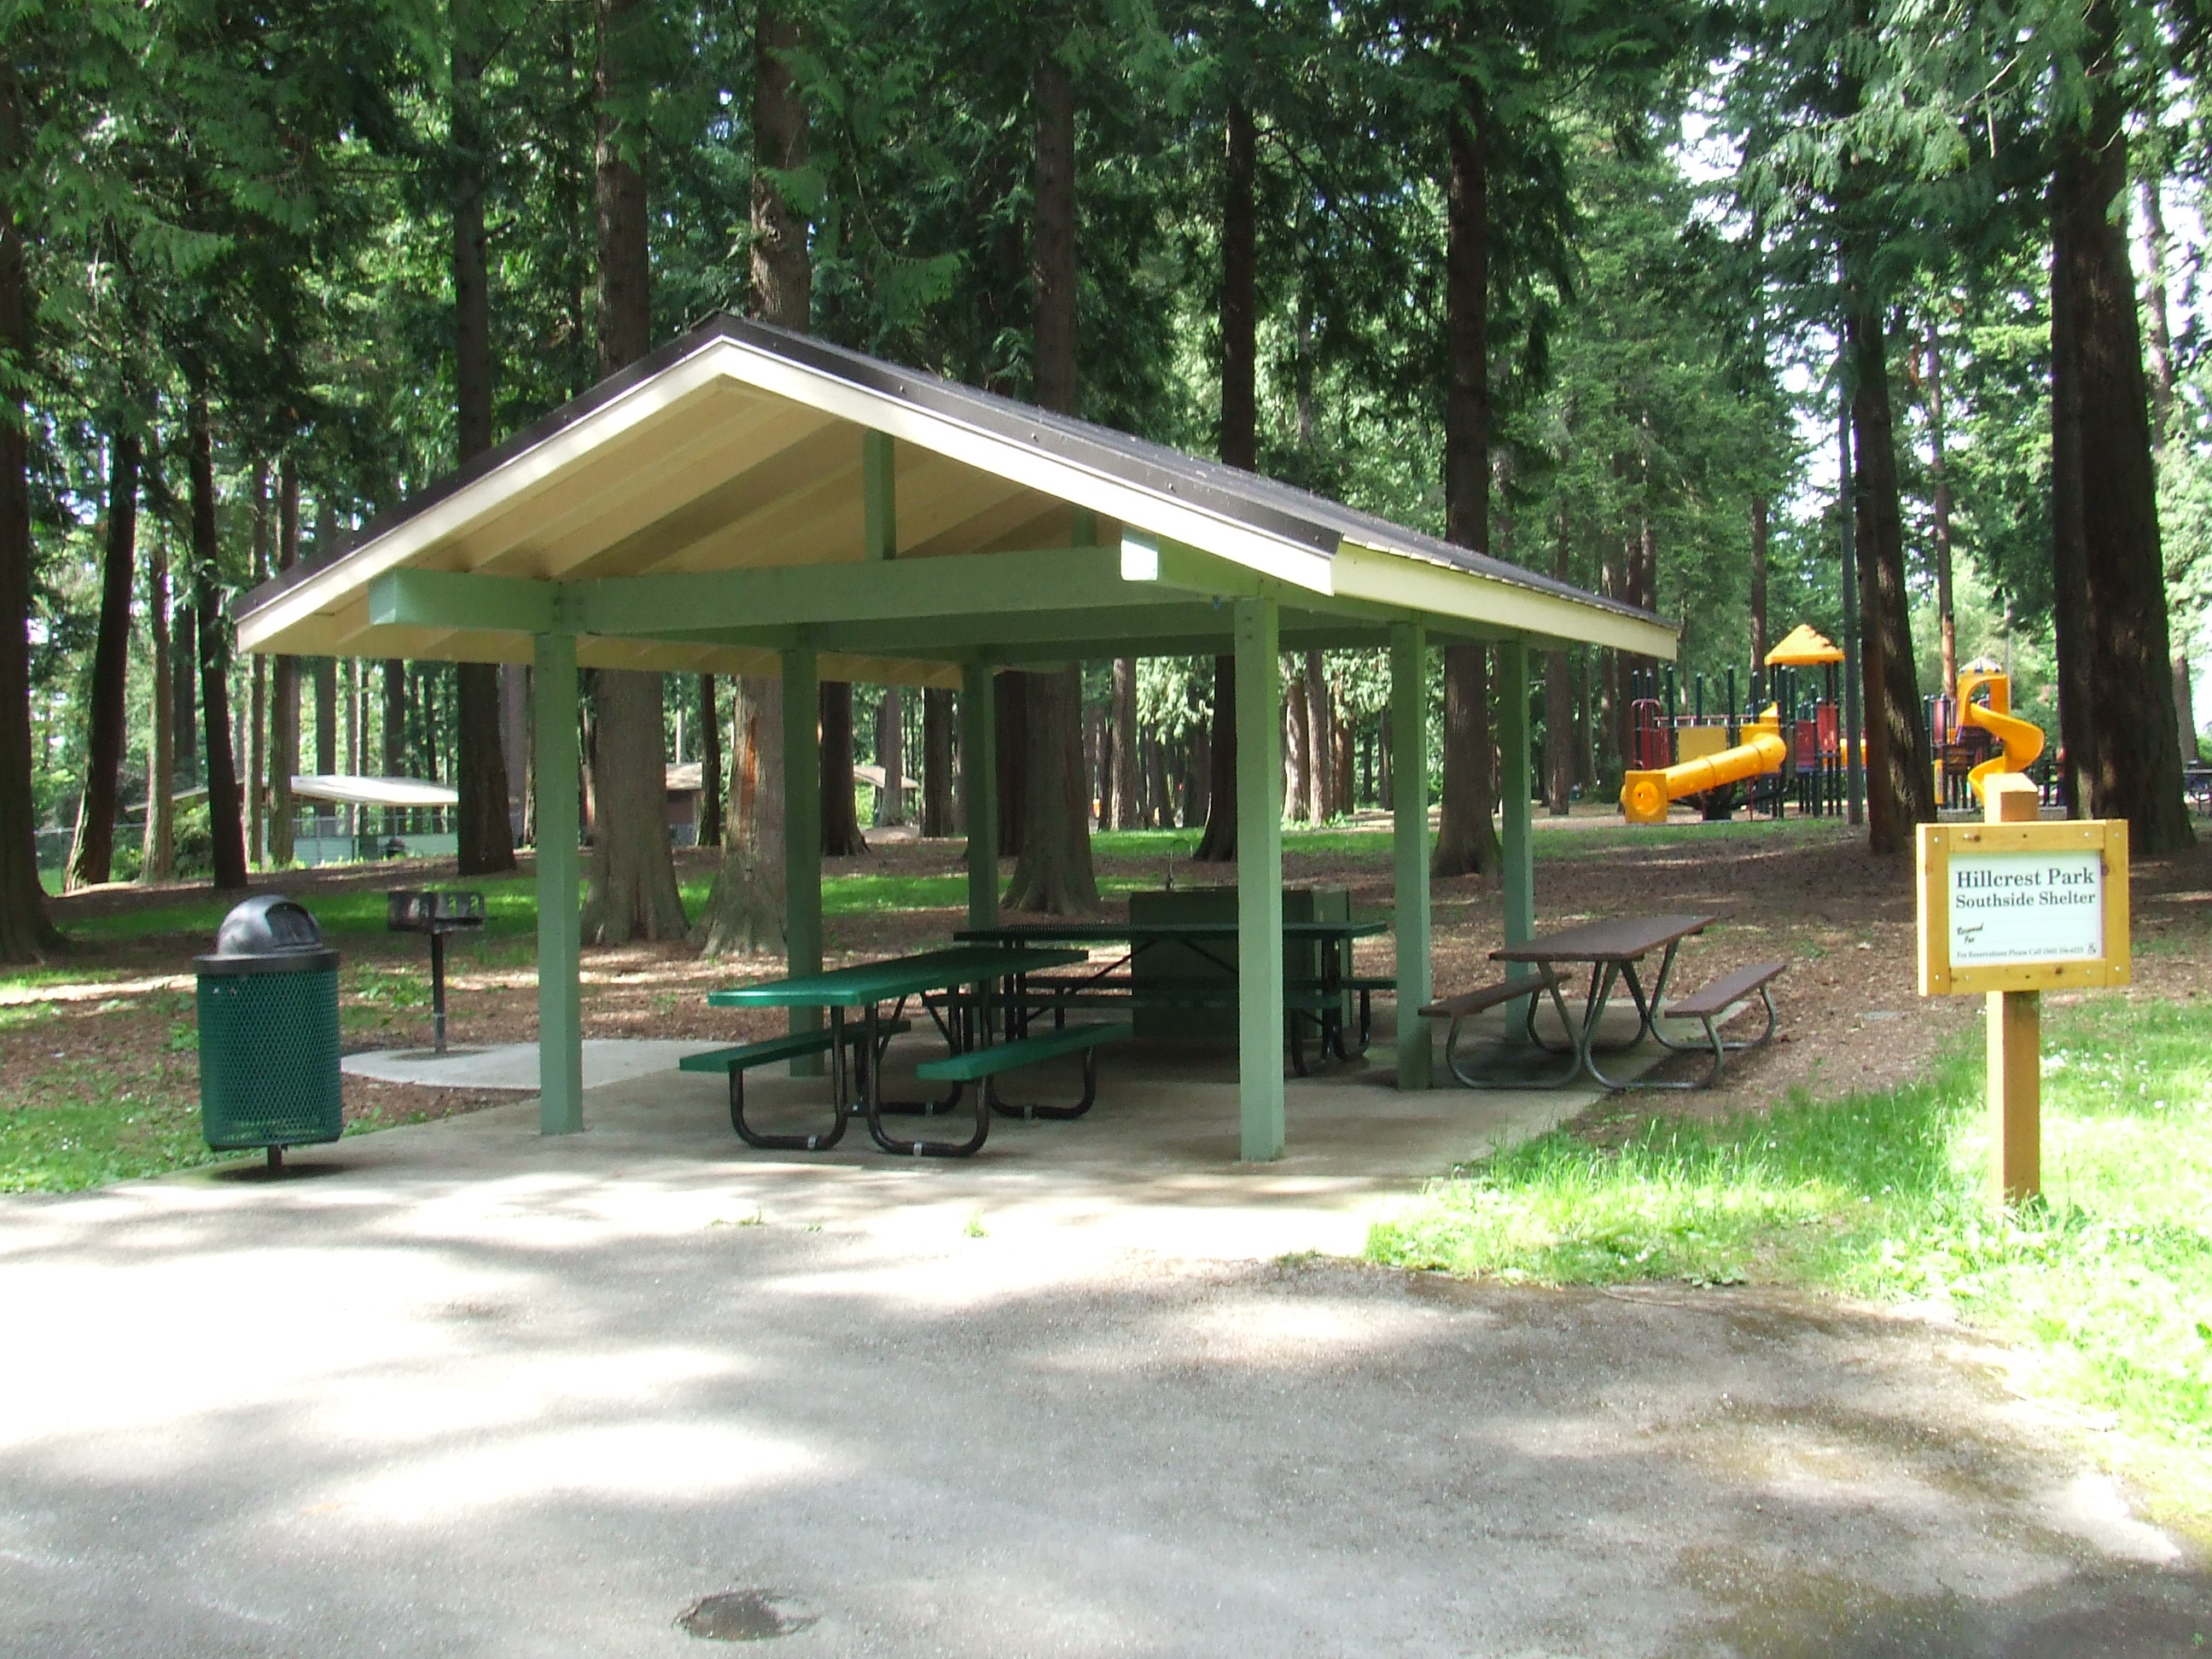 South View Shelter at Hillcrest Park